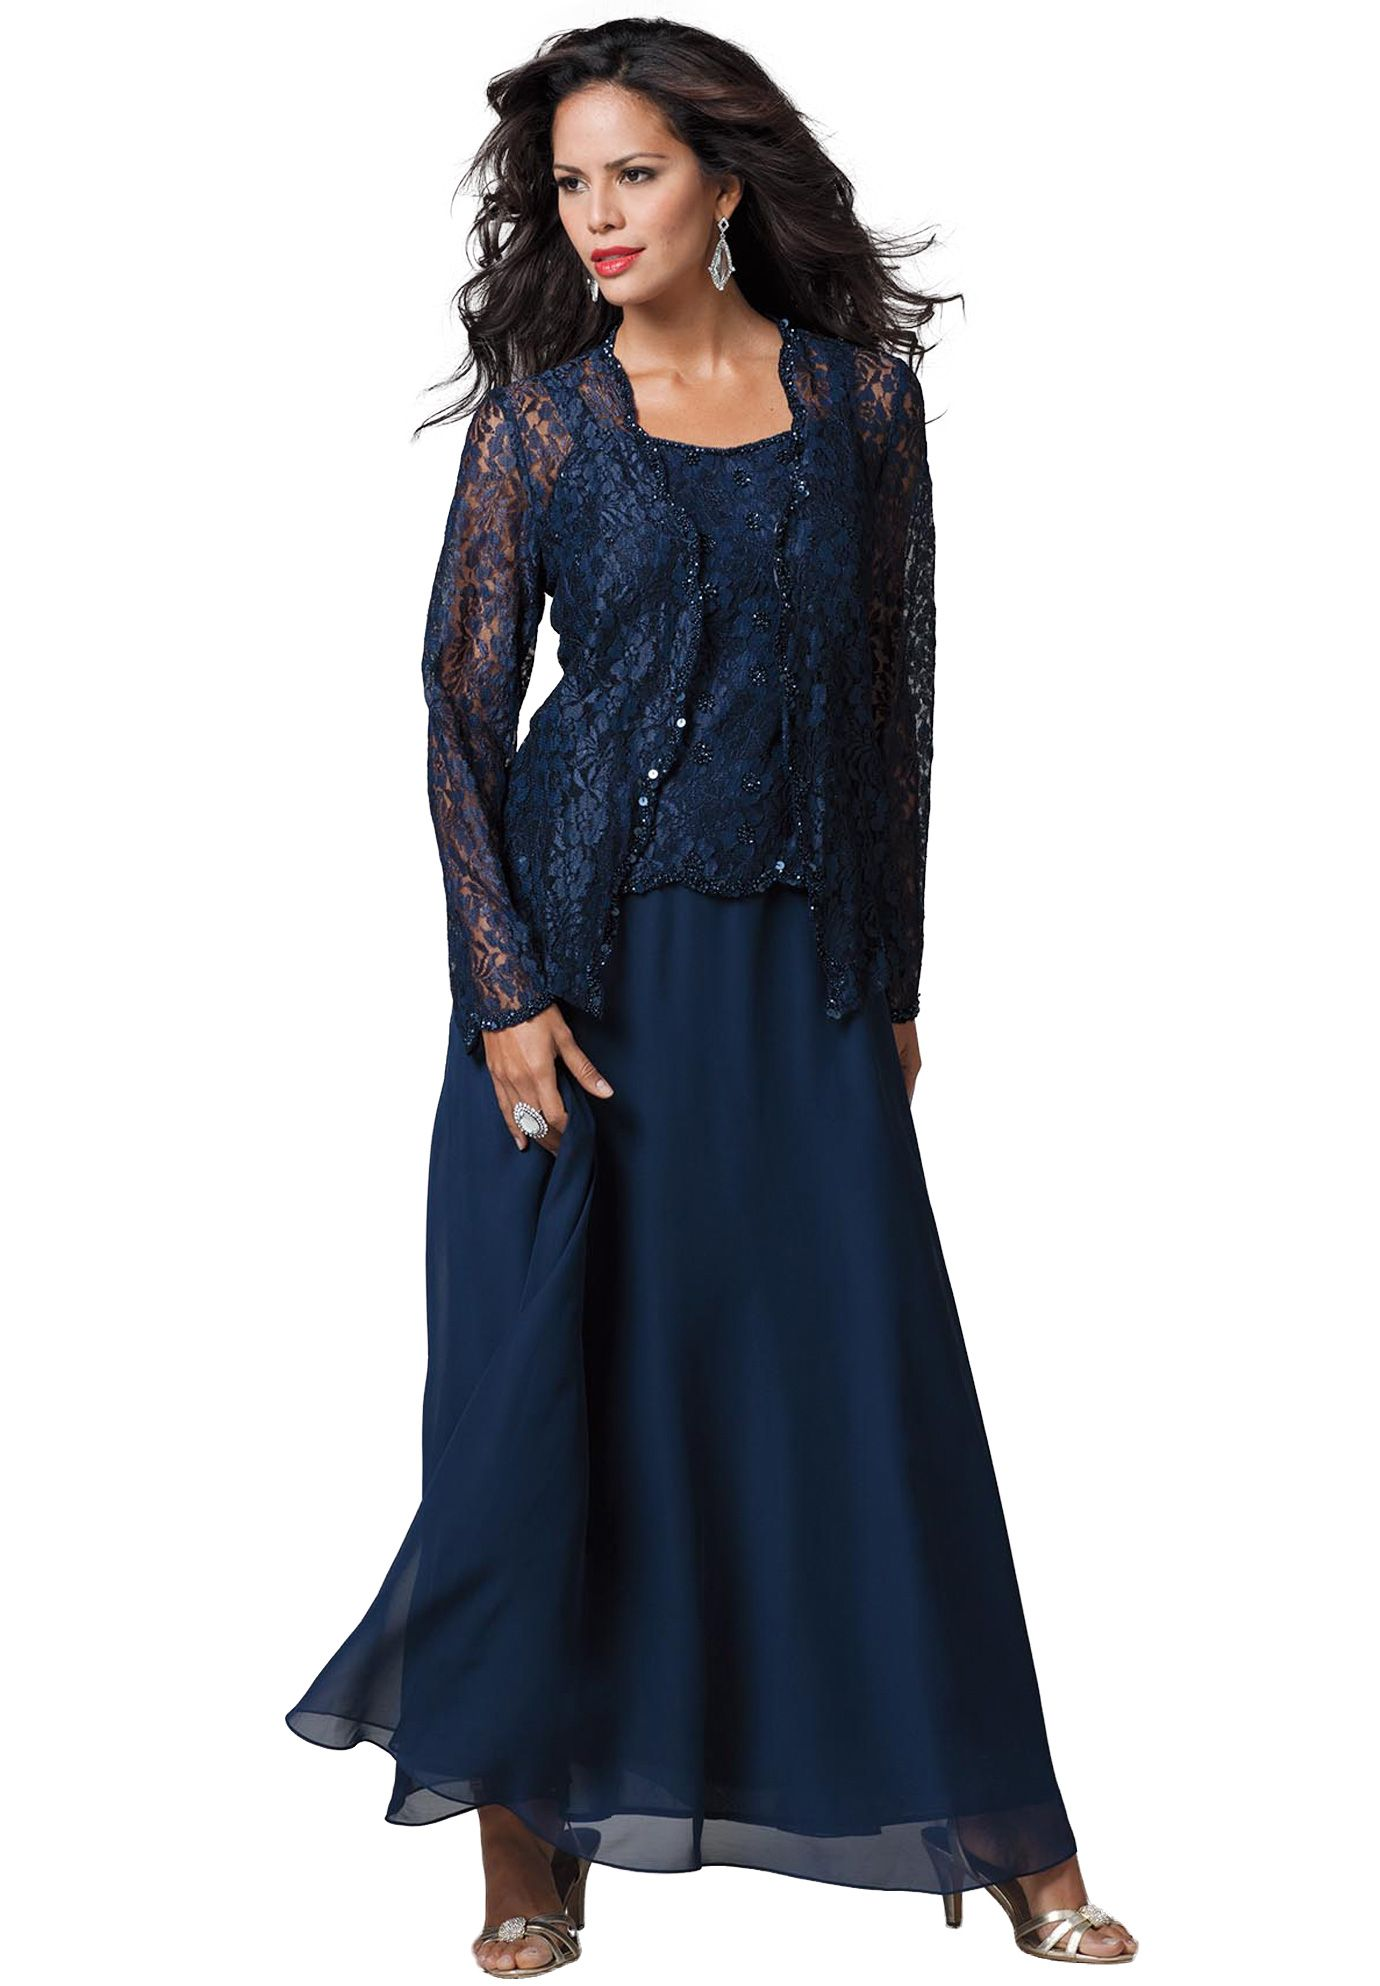 Lace and Chiffon Jacket Dress | Plus Size Special Occasion ...